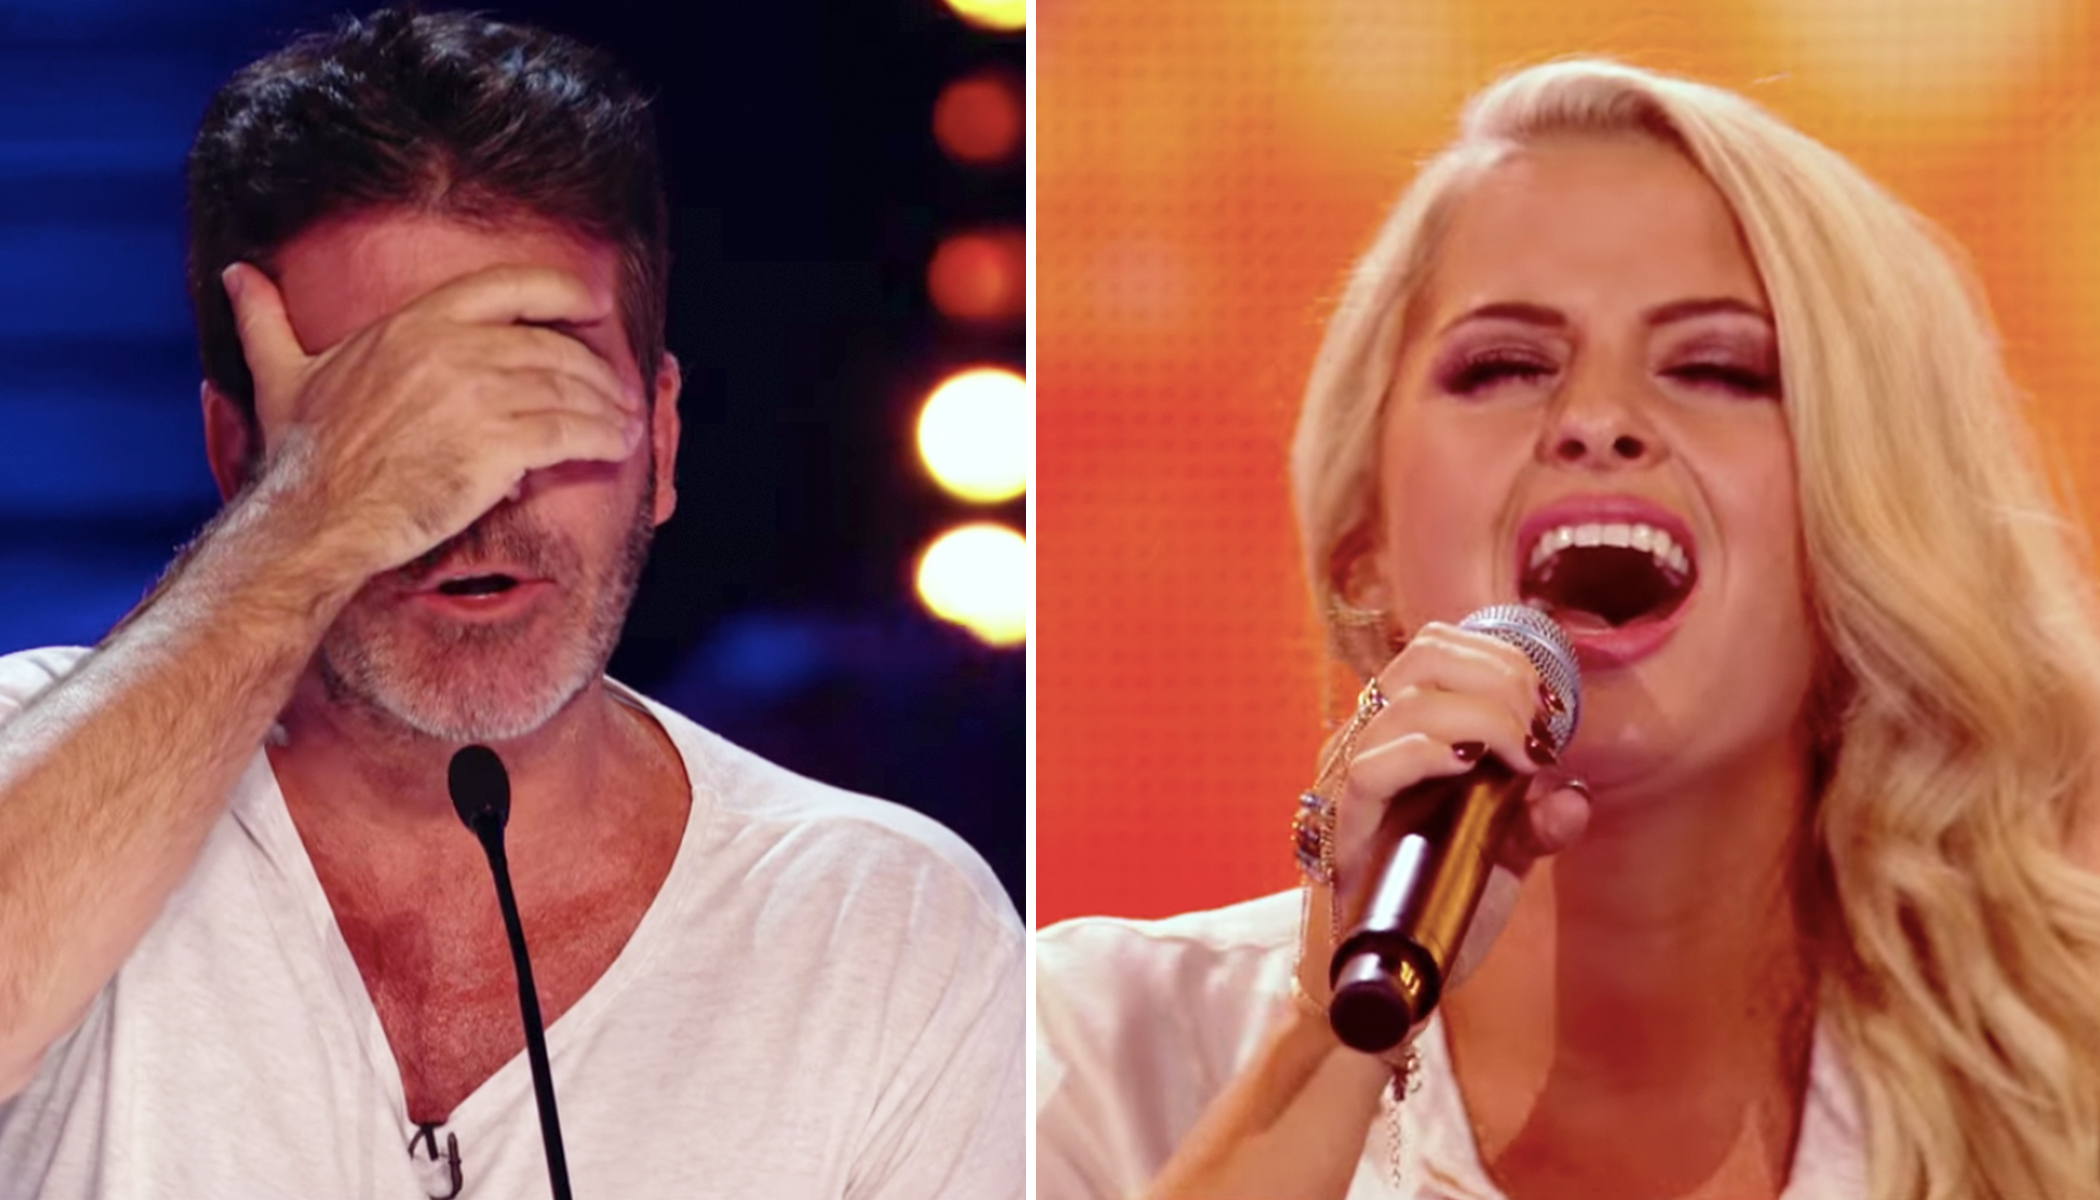 Girl Sings 'Amazing Grace' at X-Factor in A capella, Earns Skeptical Simon's Praise